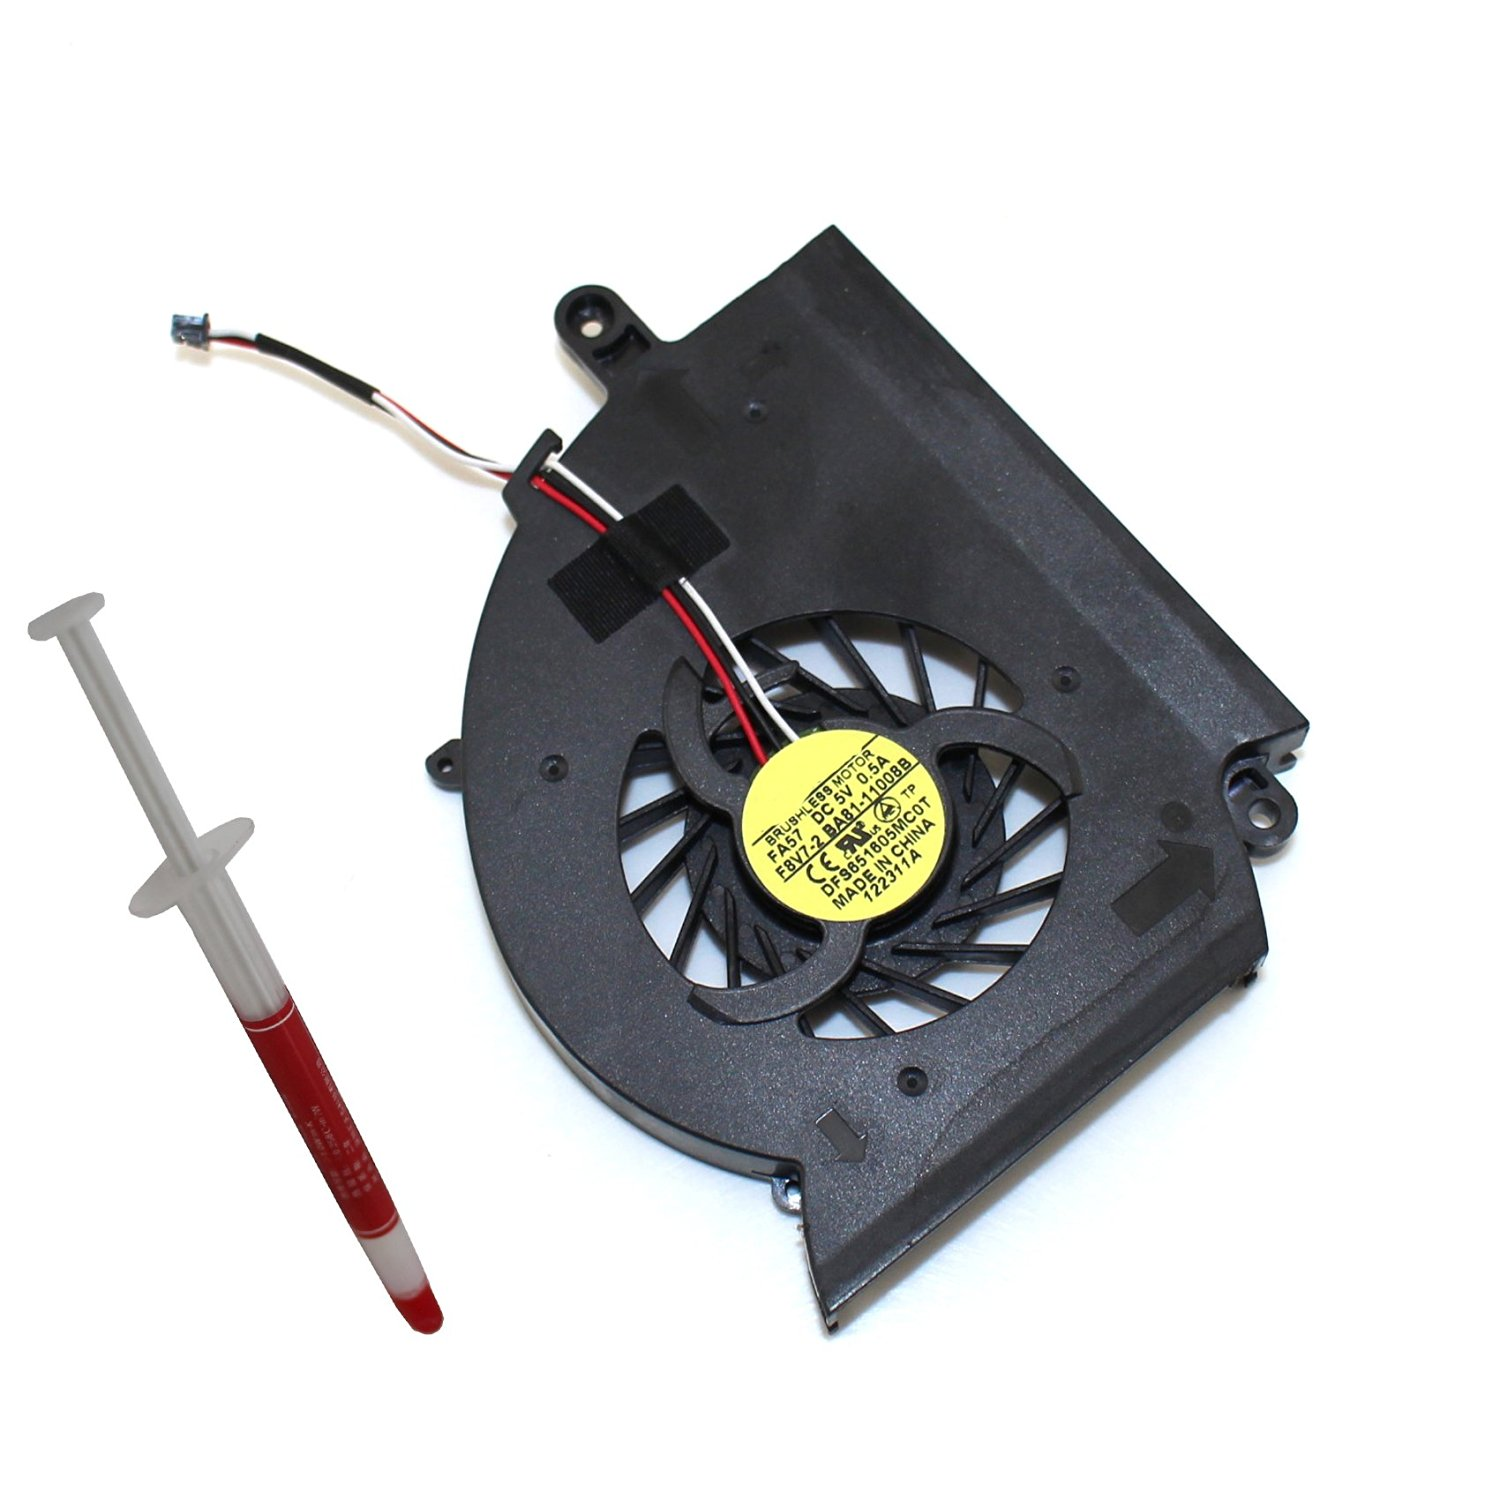 Generic NEW Laptop CPU Cooling Fan For Samsung RF510 RF511 RF710 RF712 RF711 Series Replacement Part Number DFS651605MCOT1